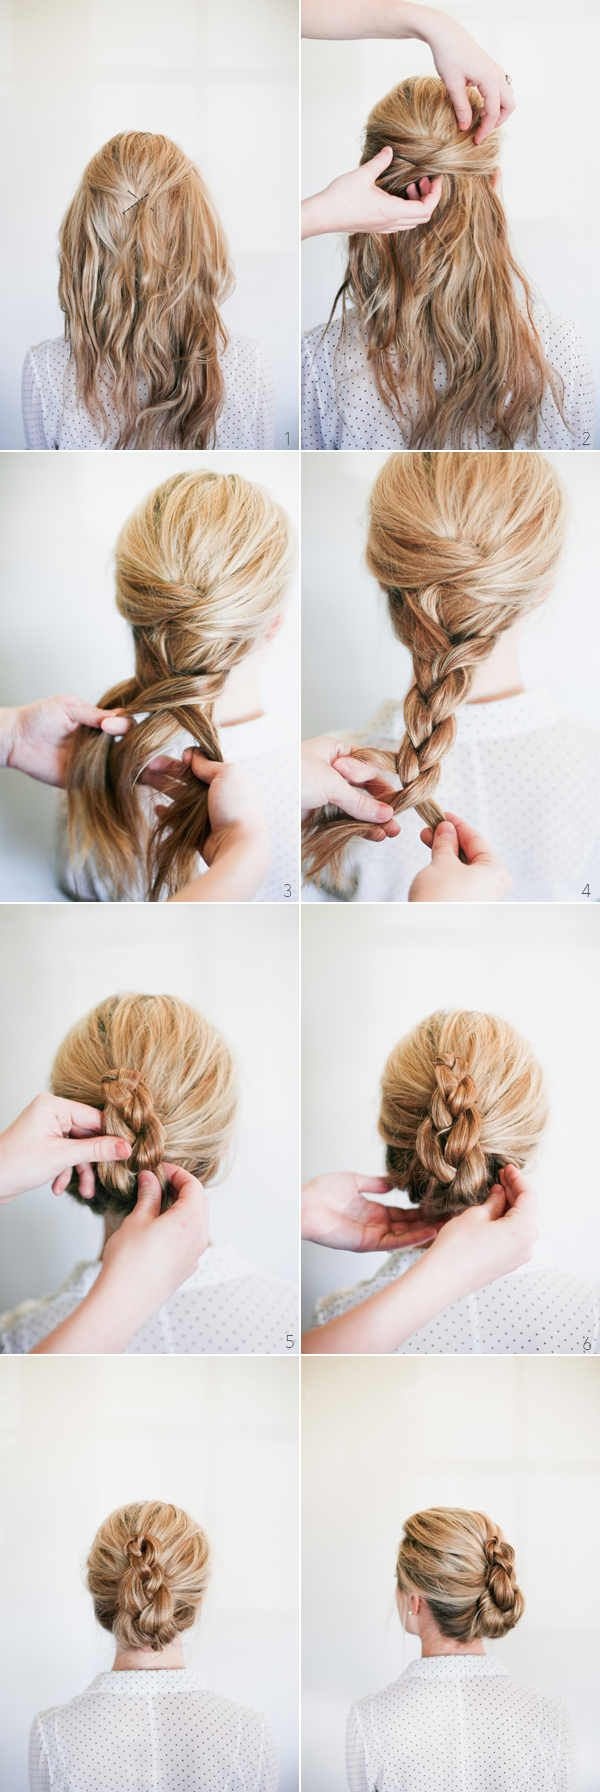 mer enn 25 bra ideer om easy wedding updo på pinterest